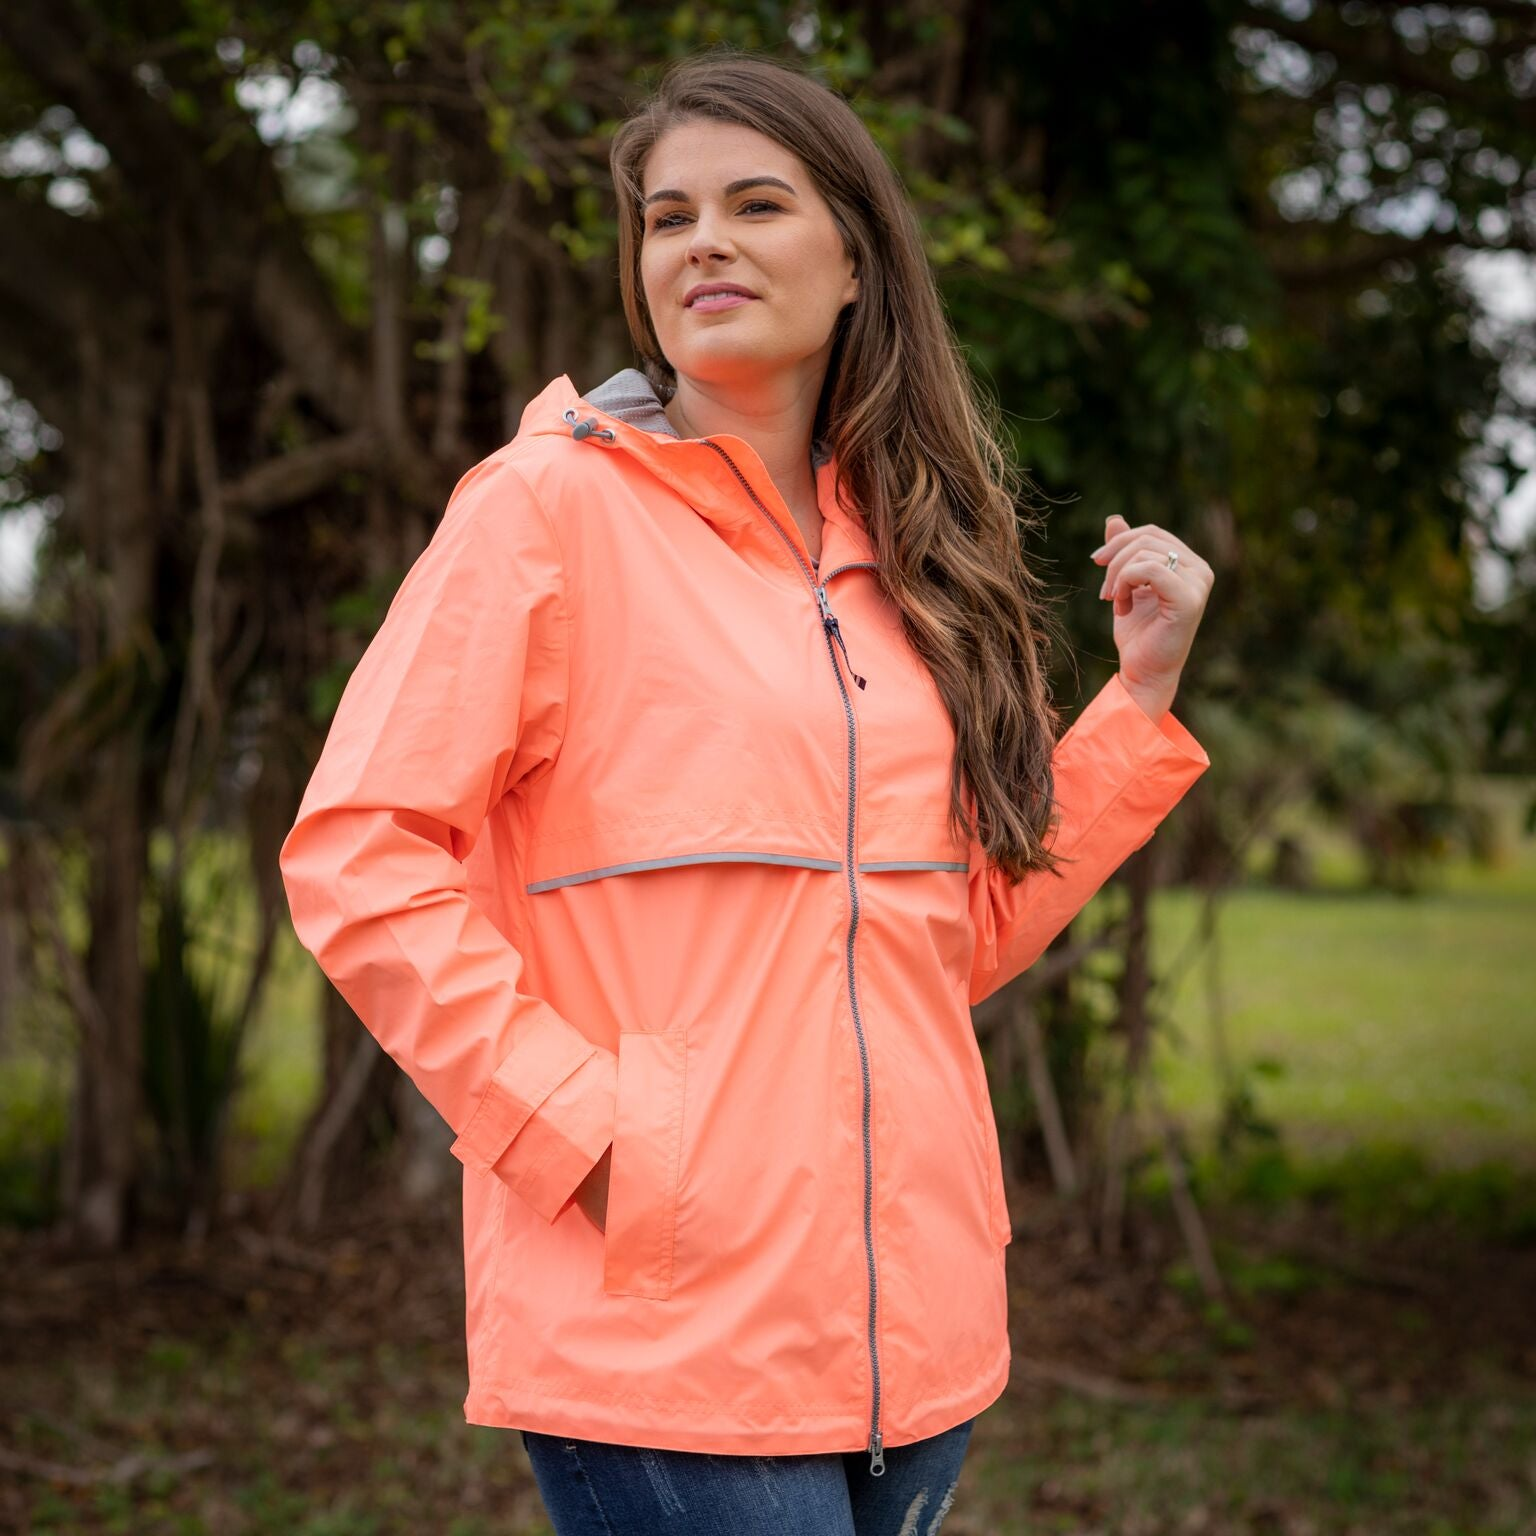 b9209ebdb New Englander Rain Jacket in Bright Coral by Charles River Apparel  (Preorder: Ships in 1-2 Weeks)